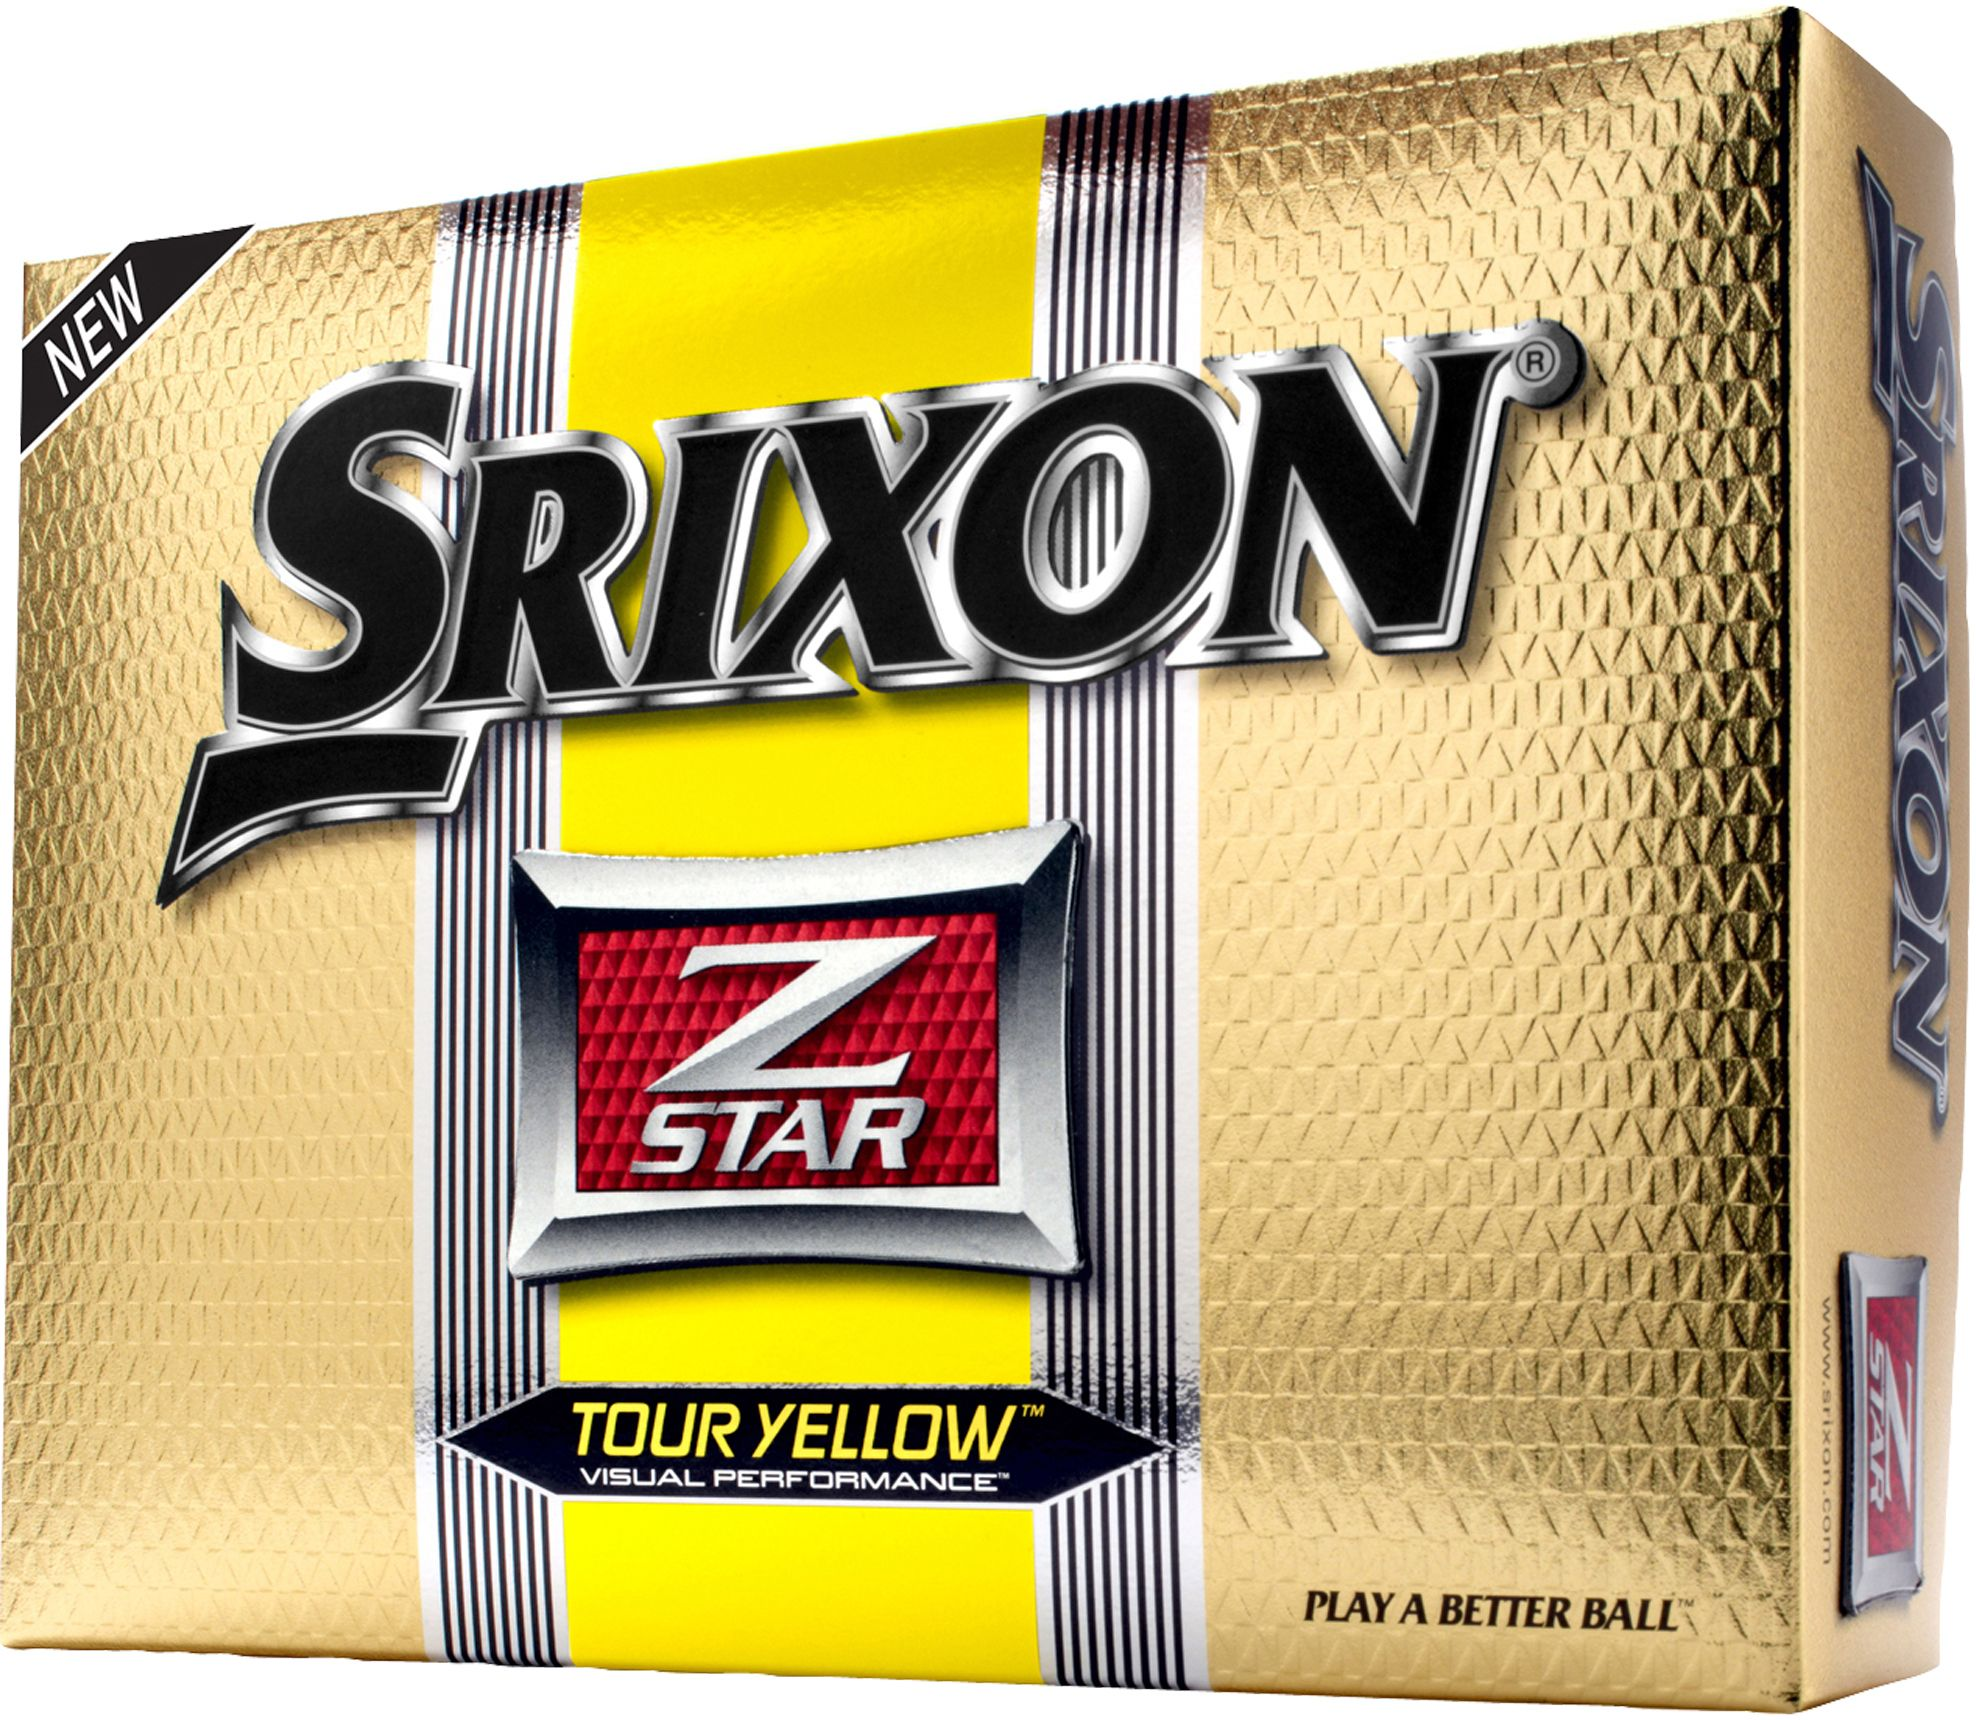 Srixon Men's Z-STAR Tour Yellow Golf Balls - 12 pack